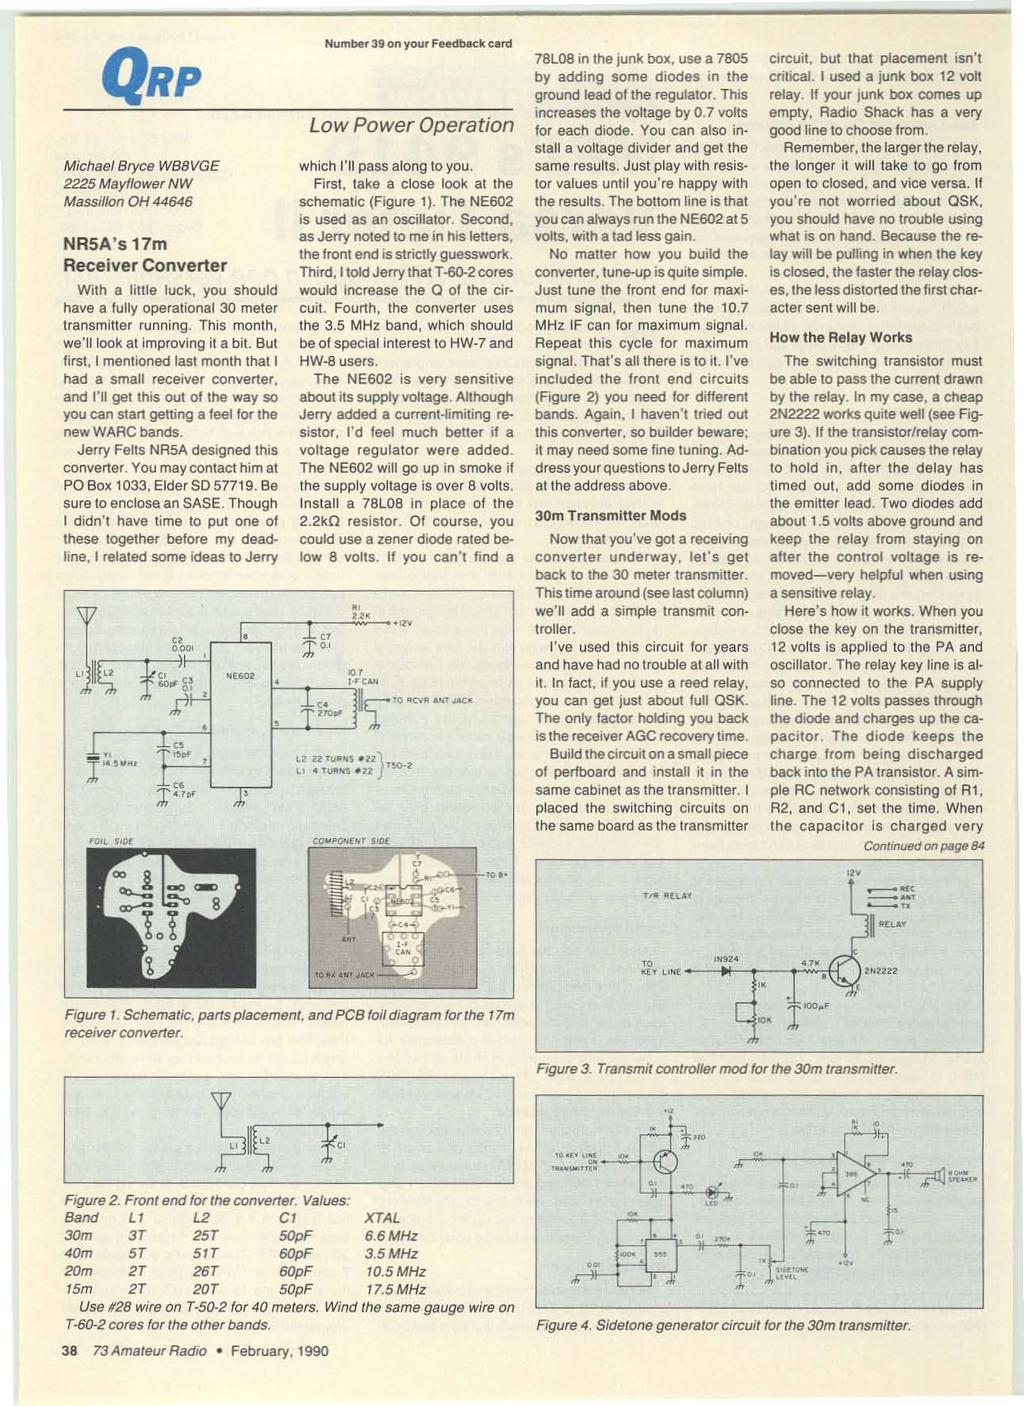 Ffi Rfi W 000 G Rolf L J O1kb Pdf Kenwood Tk 840 940 941 Radio Interface Cable Description And Schematic Michael Bryce Wb8 Vge 2225 Mayflower Nw Massillon Oh 44646 Nrsas 17m Receiver Converter With A